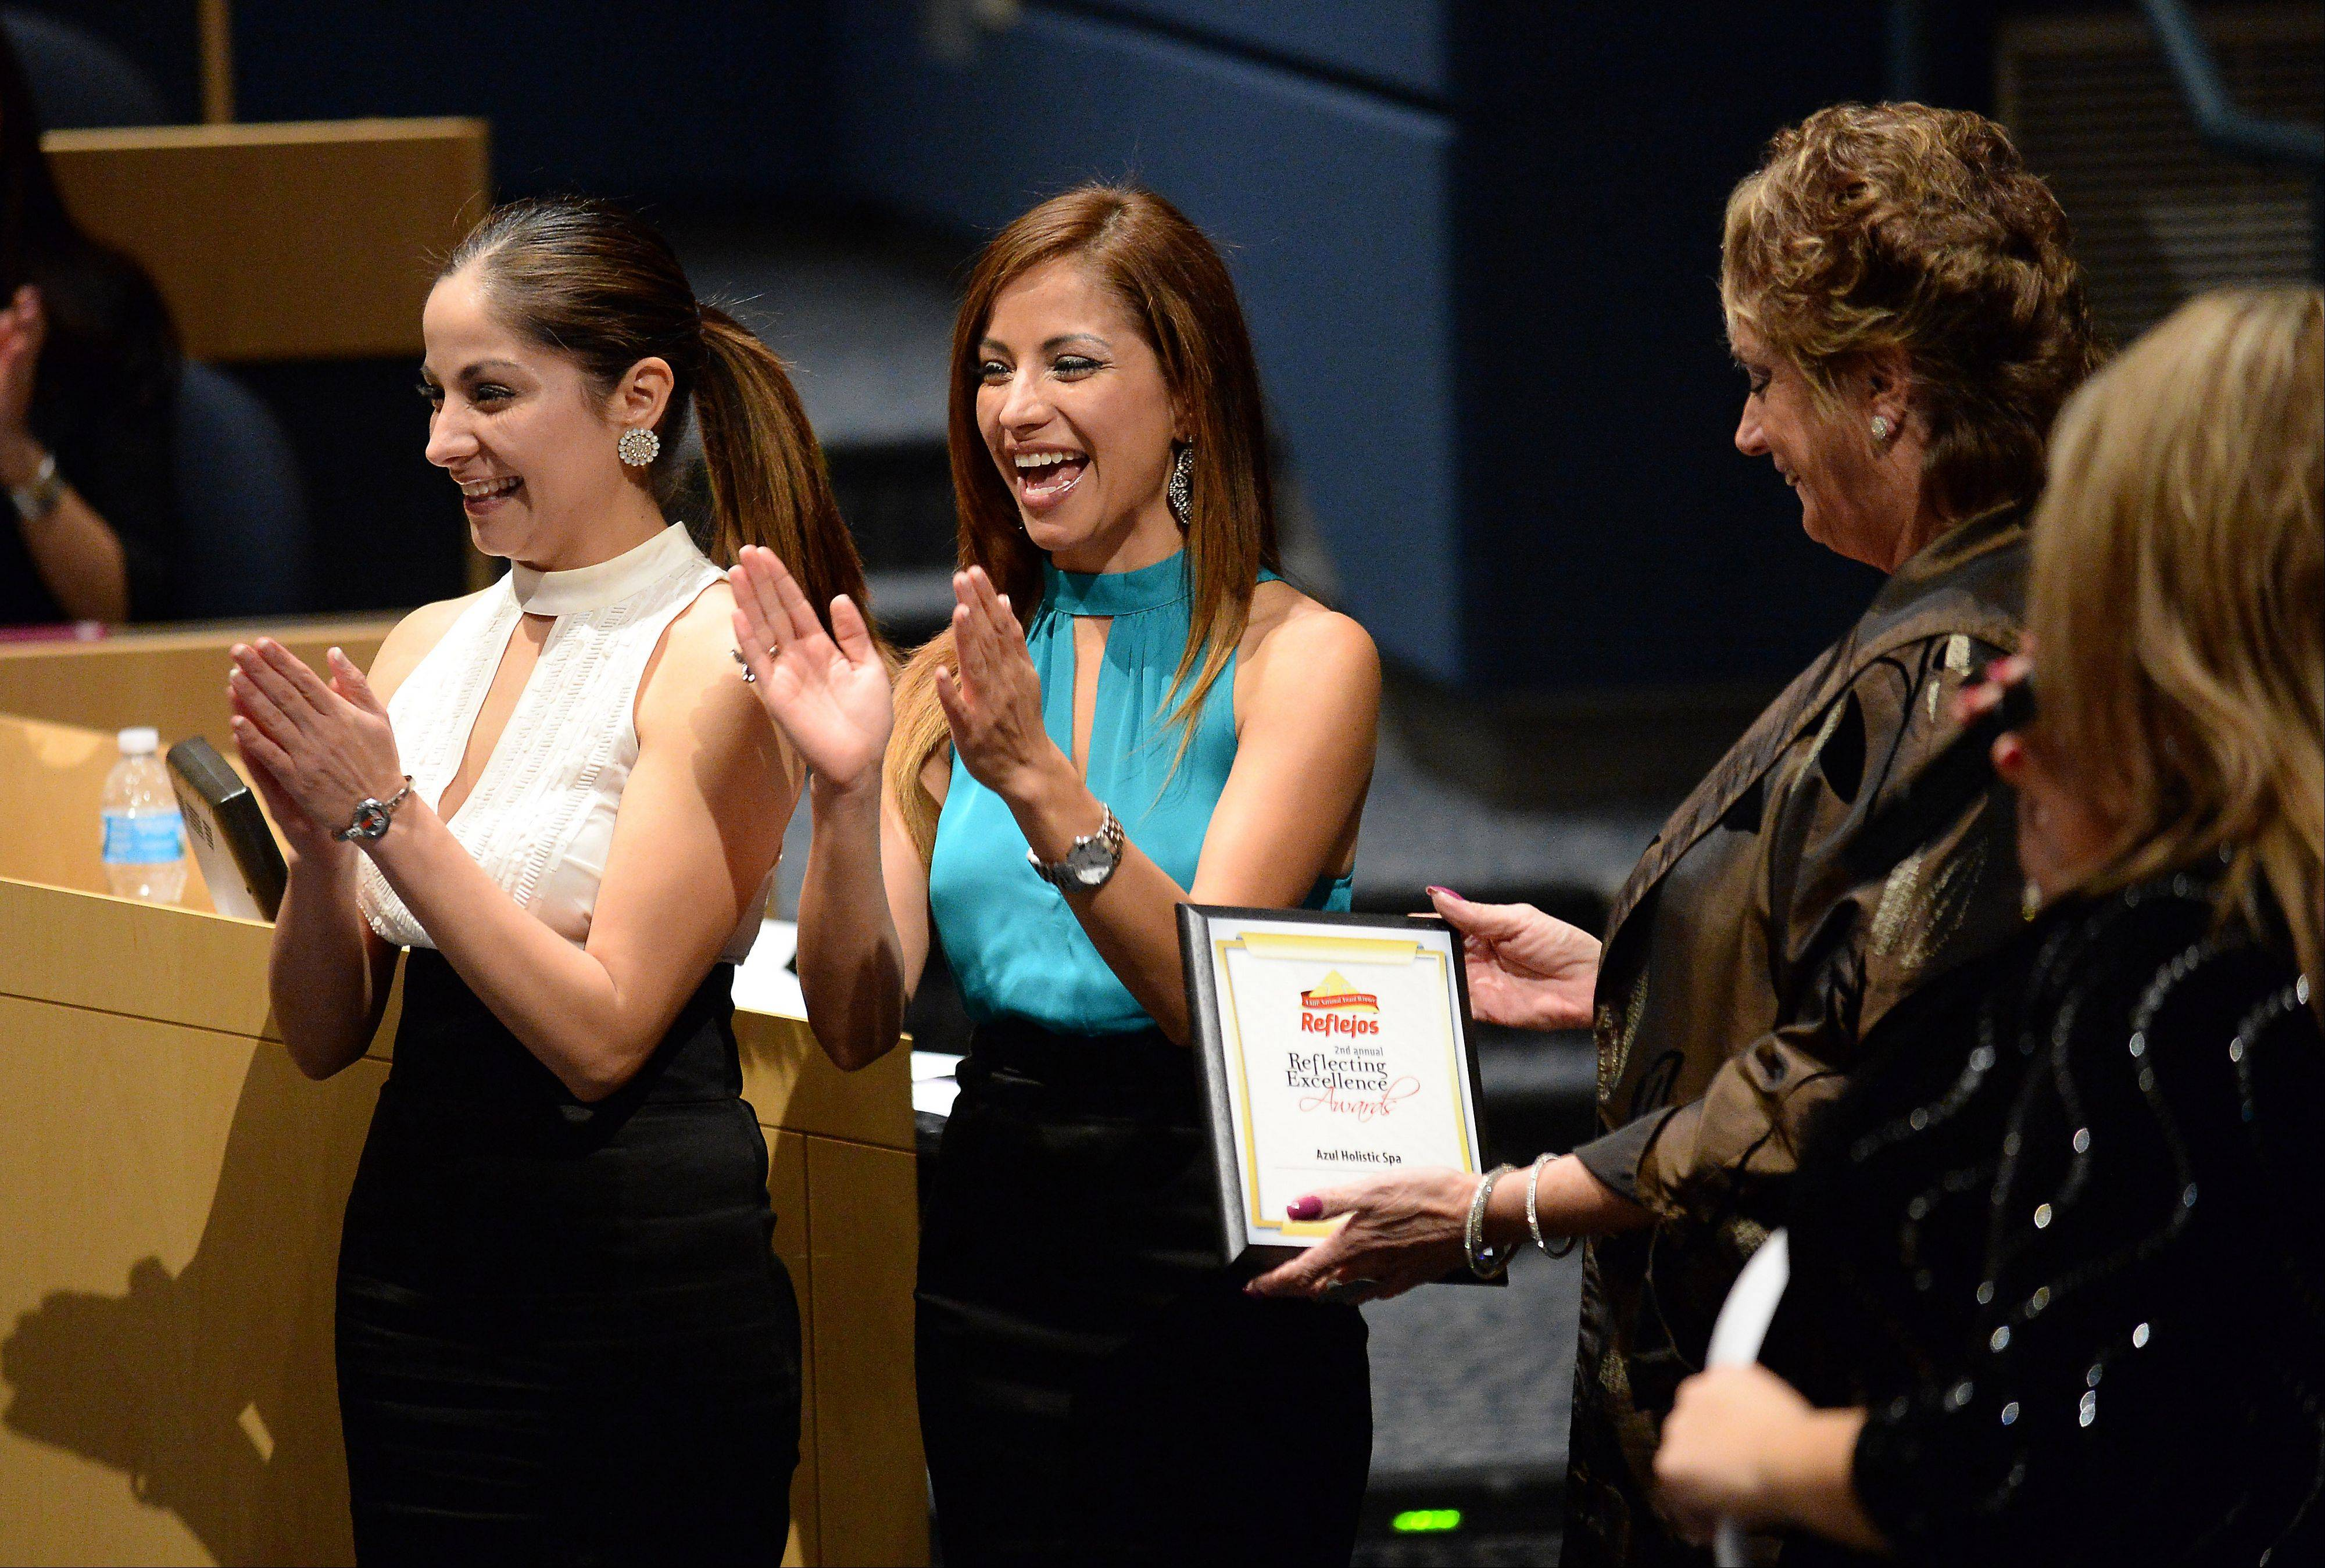 Linda Siete, sales operation manager at Reflejos, presents Silvia Romero, left, and Leticia Romero of the Azul Holistic Spa in Chicago with an award at the Daily Herald Reflejos Reflecting Excellence Awards event at Harper College on Thursday.